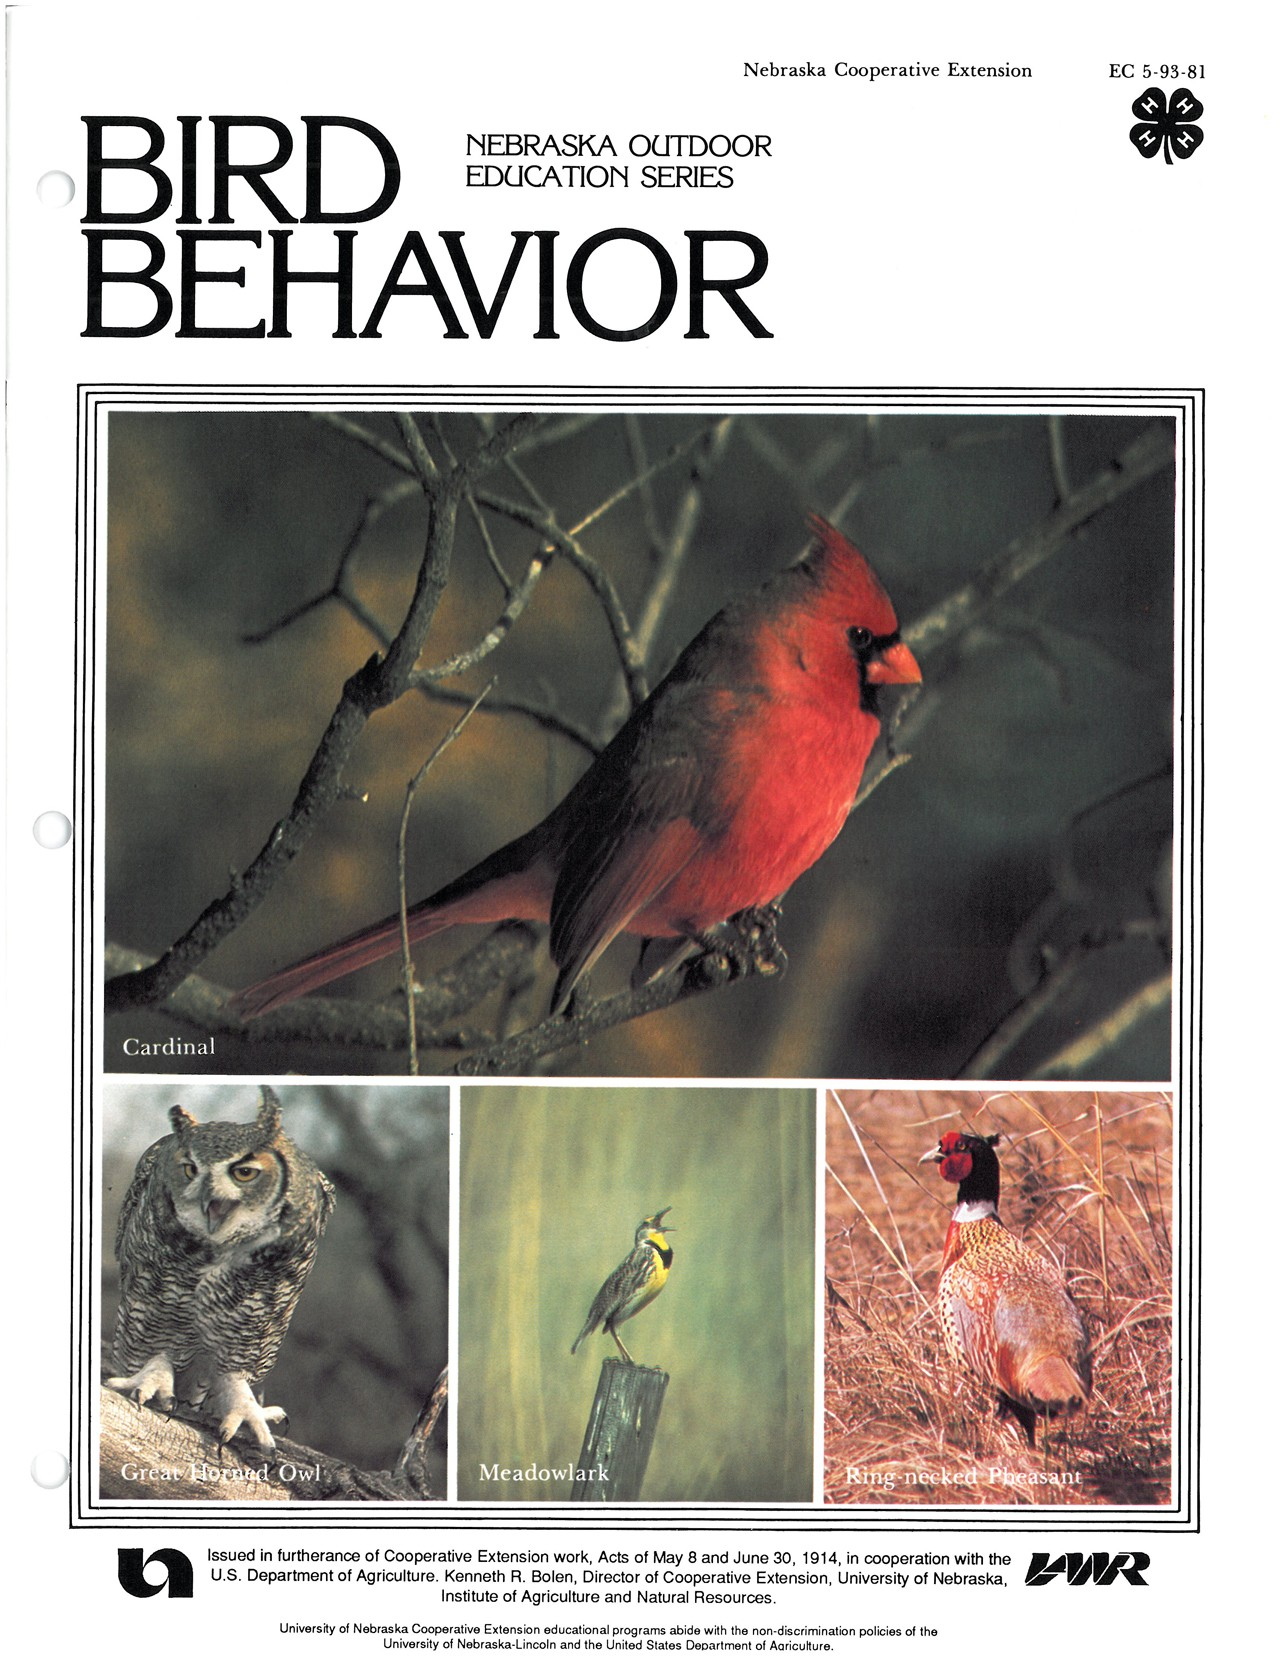 Bird Behavior